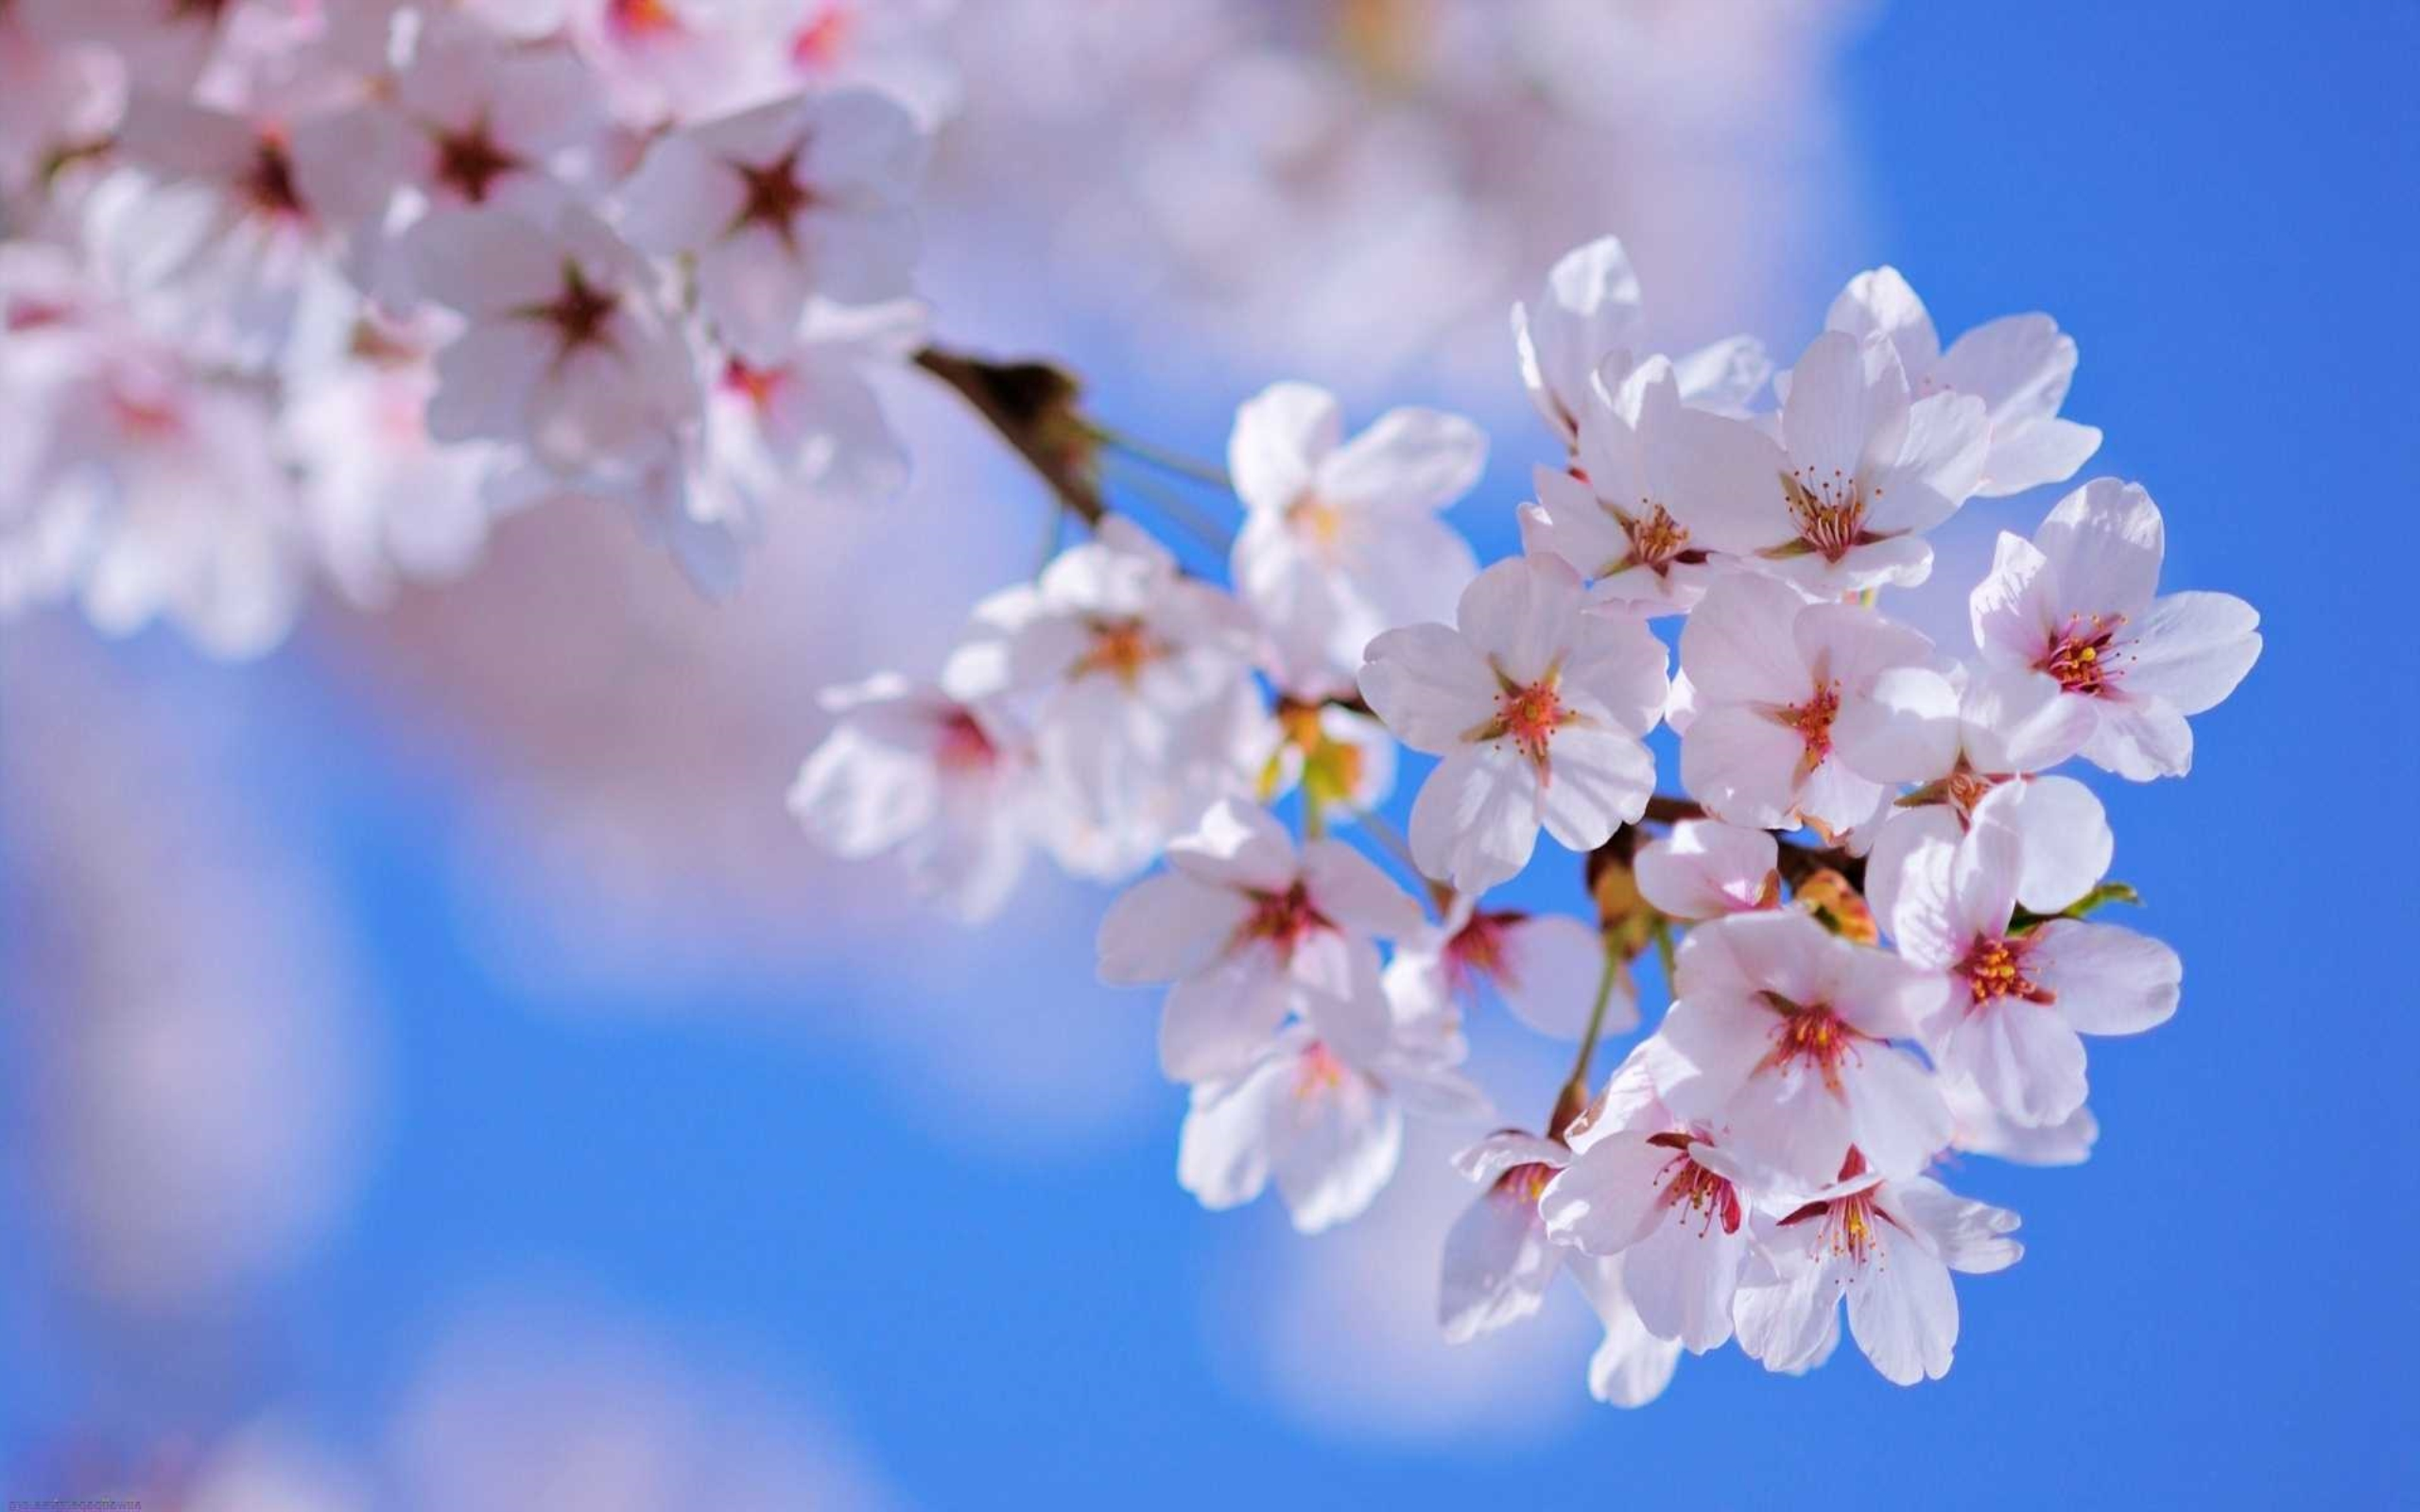 Wallpaper spring flowers image hd pic wpb00471 wallpaper download mightylinksfo